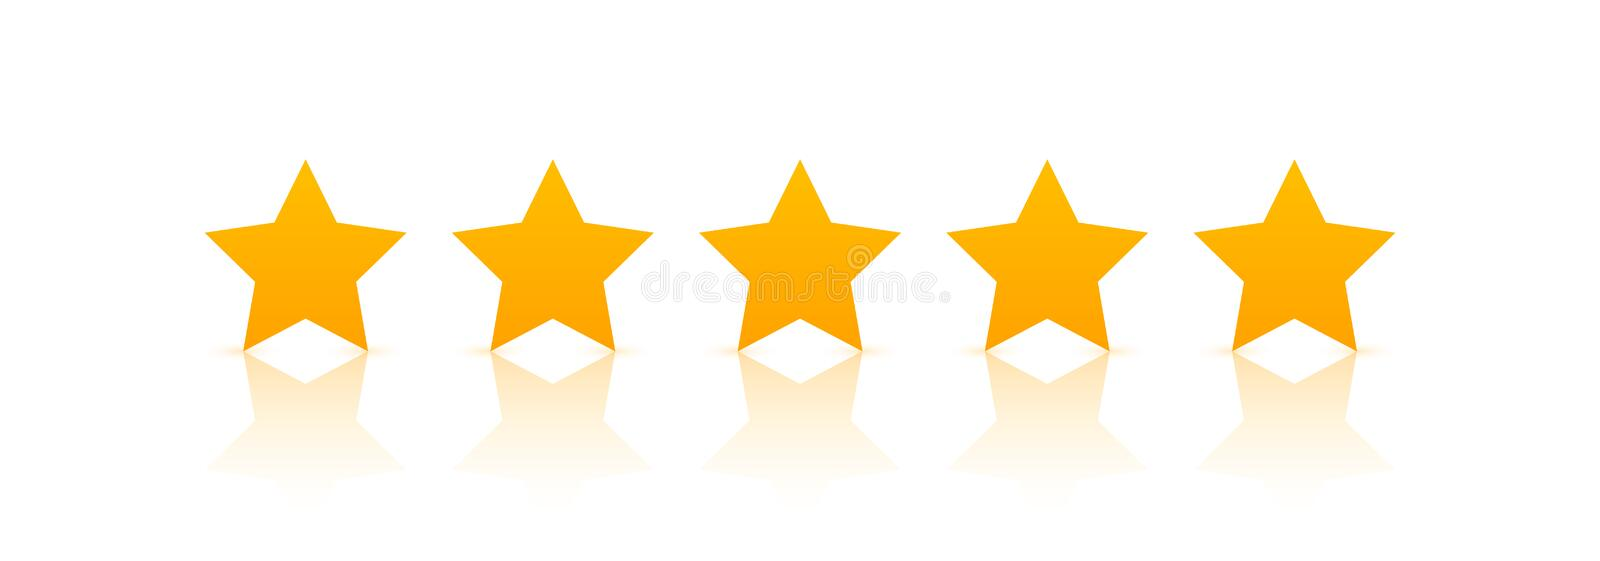 5 star rating icon vector. Rate vote like ranking symbol.  vector illustration